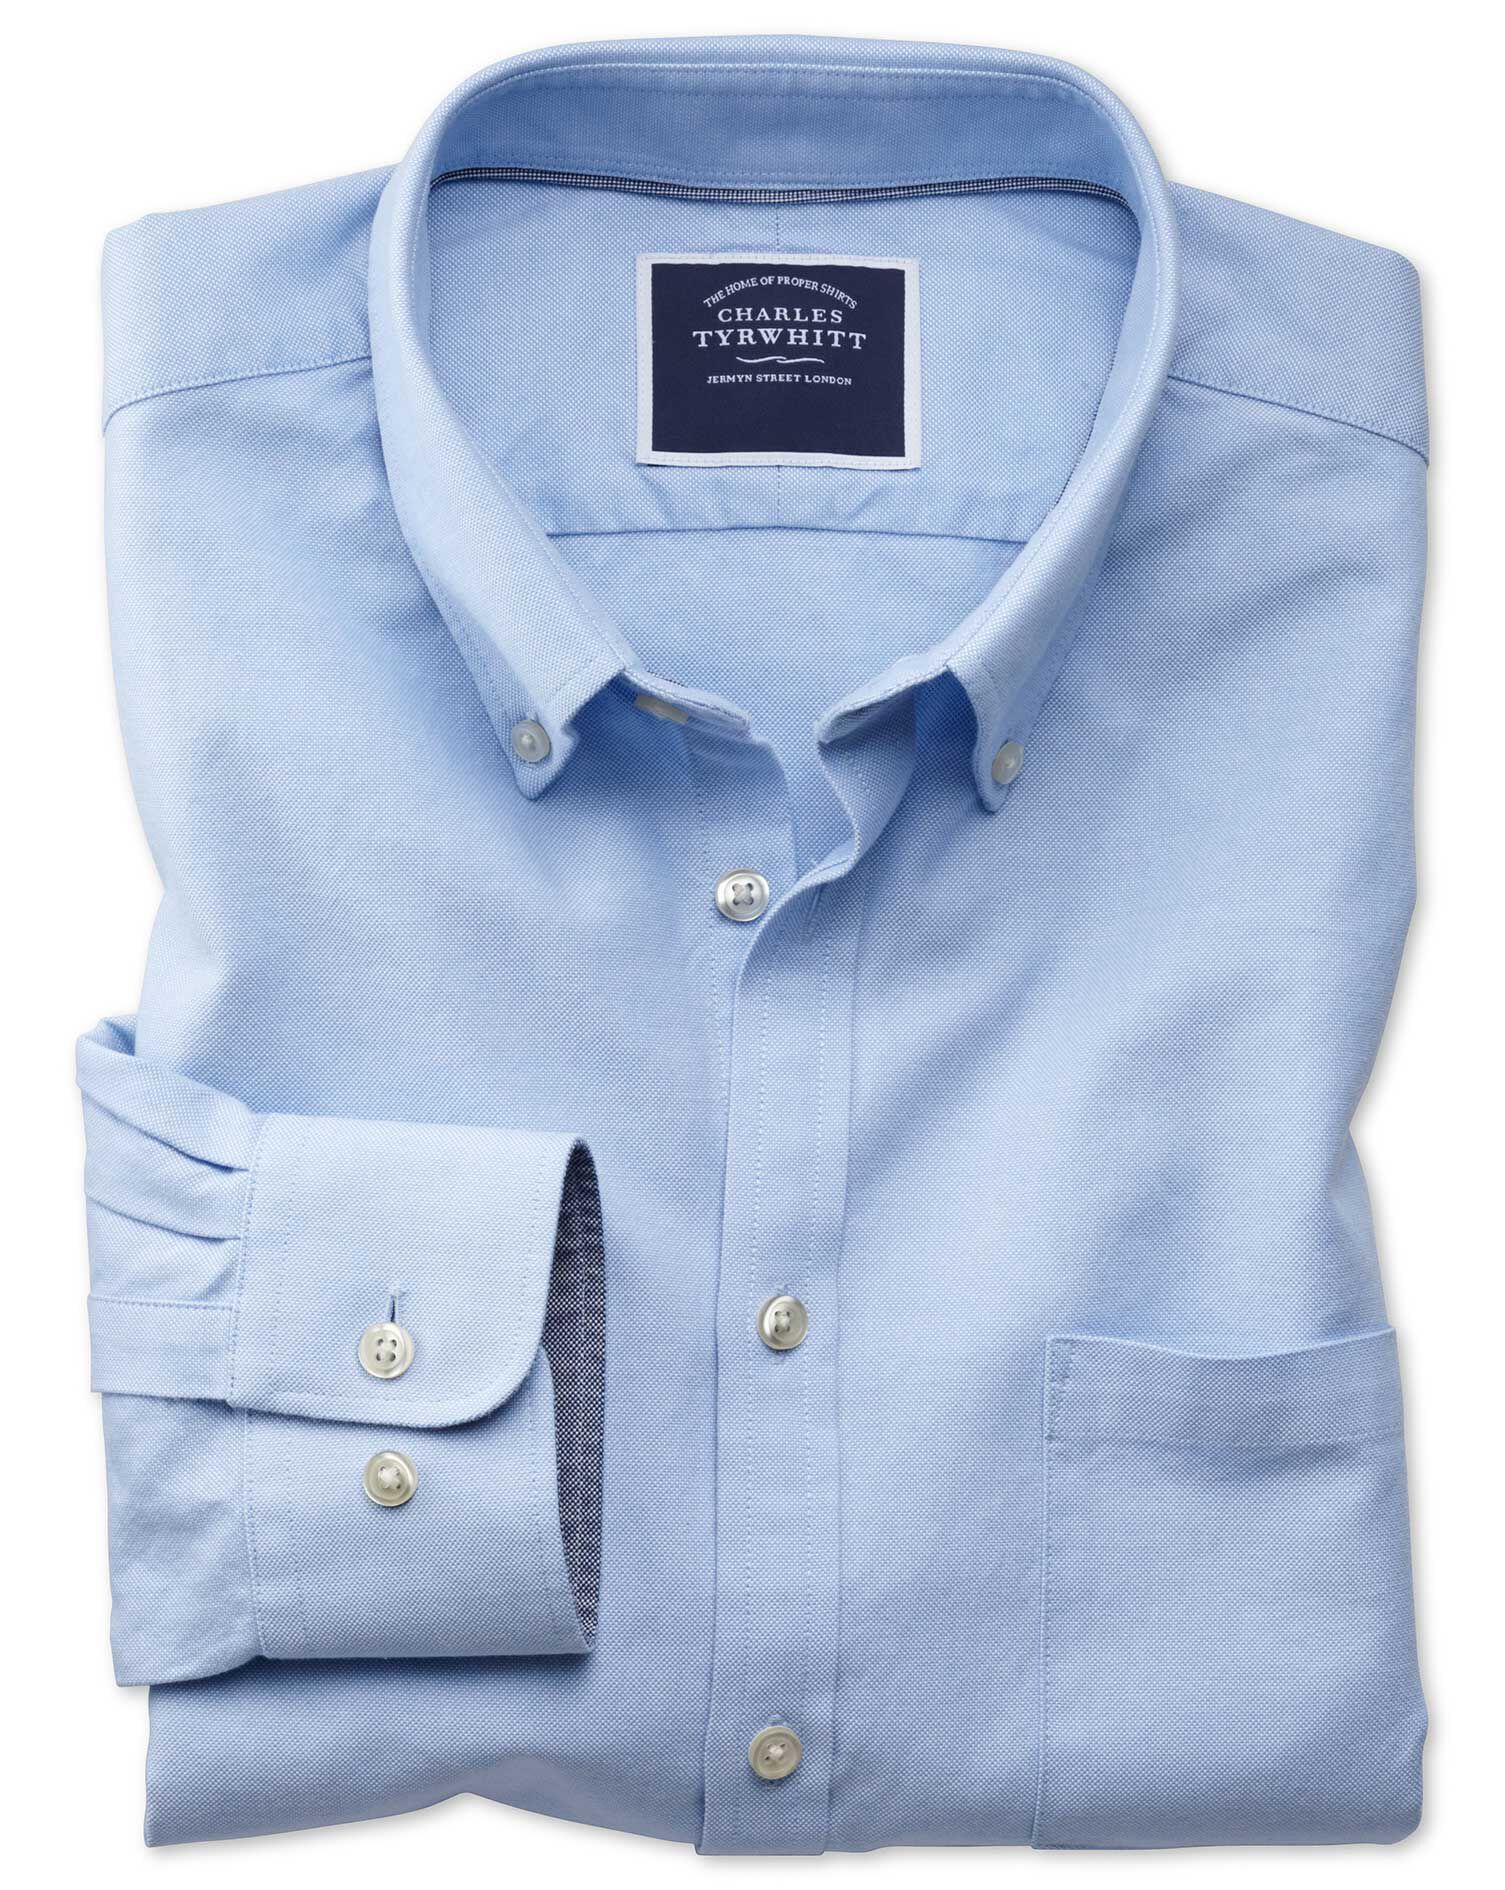 Slim Fit Button-Down Washed Oxford Plain Sky Blue Cotton Shirt Single Cuff Size Medium by Charles Ty